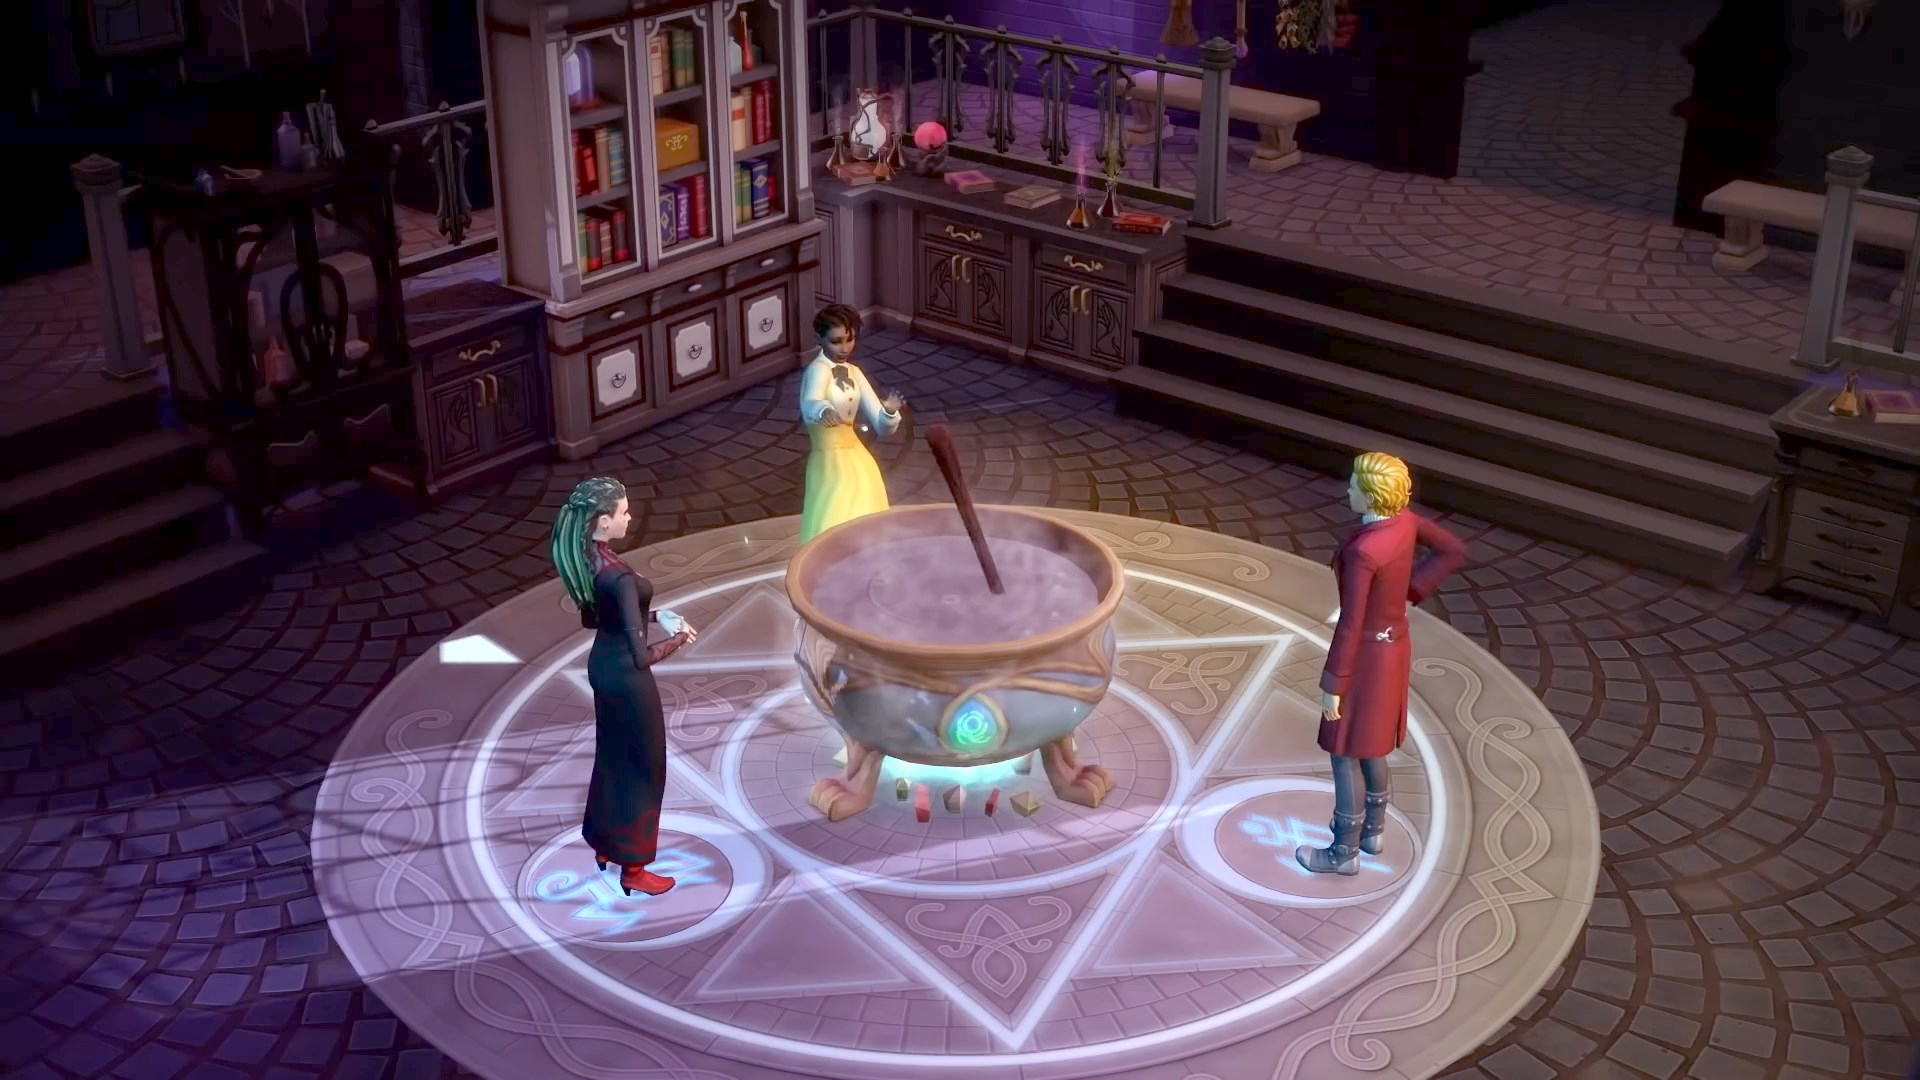 The Sims 4 Realm of Magic 1.55.105.1020 All in One Customizable [Anadius] - The Sim Architect